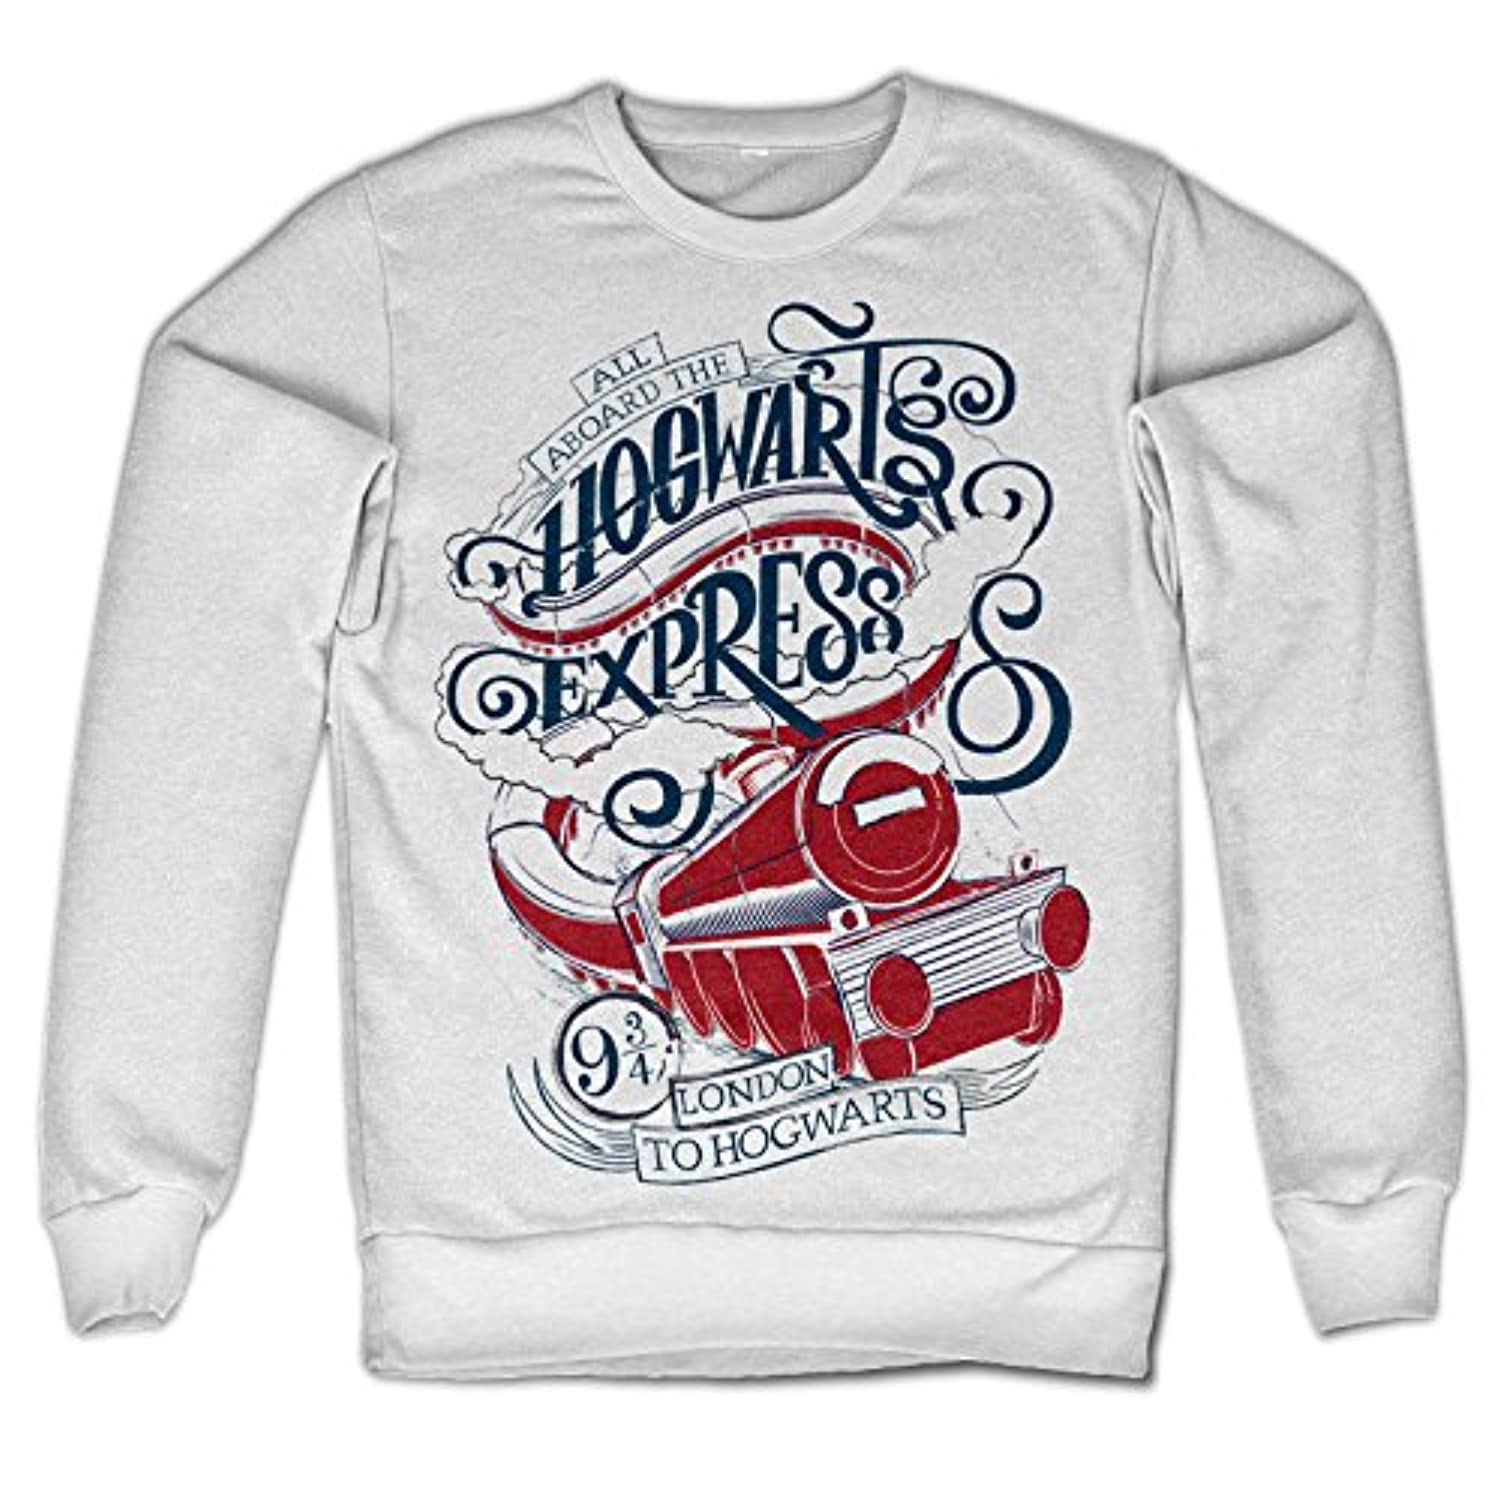 Officially Licensed Inked All Aboard The Hogwarts Express Sweatshirt (White)